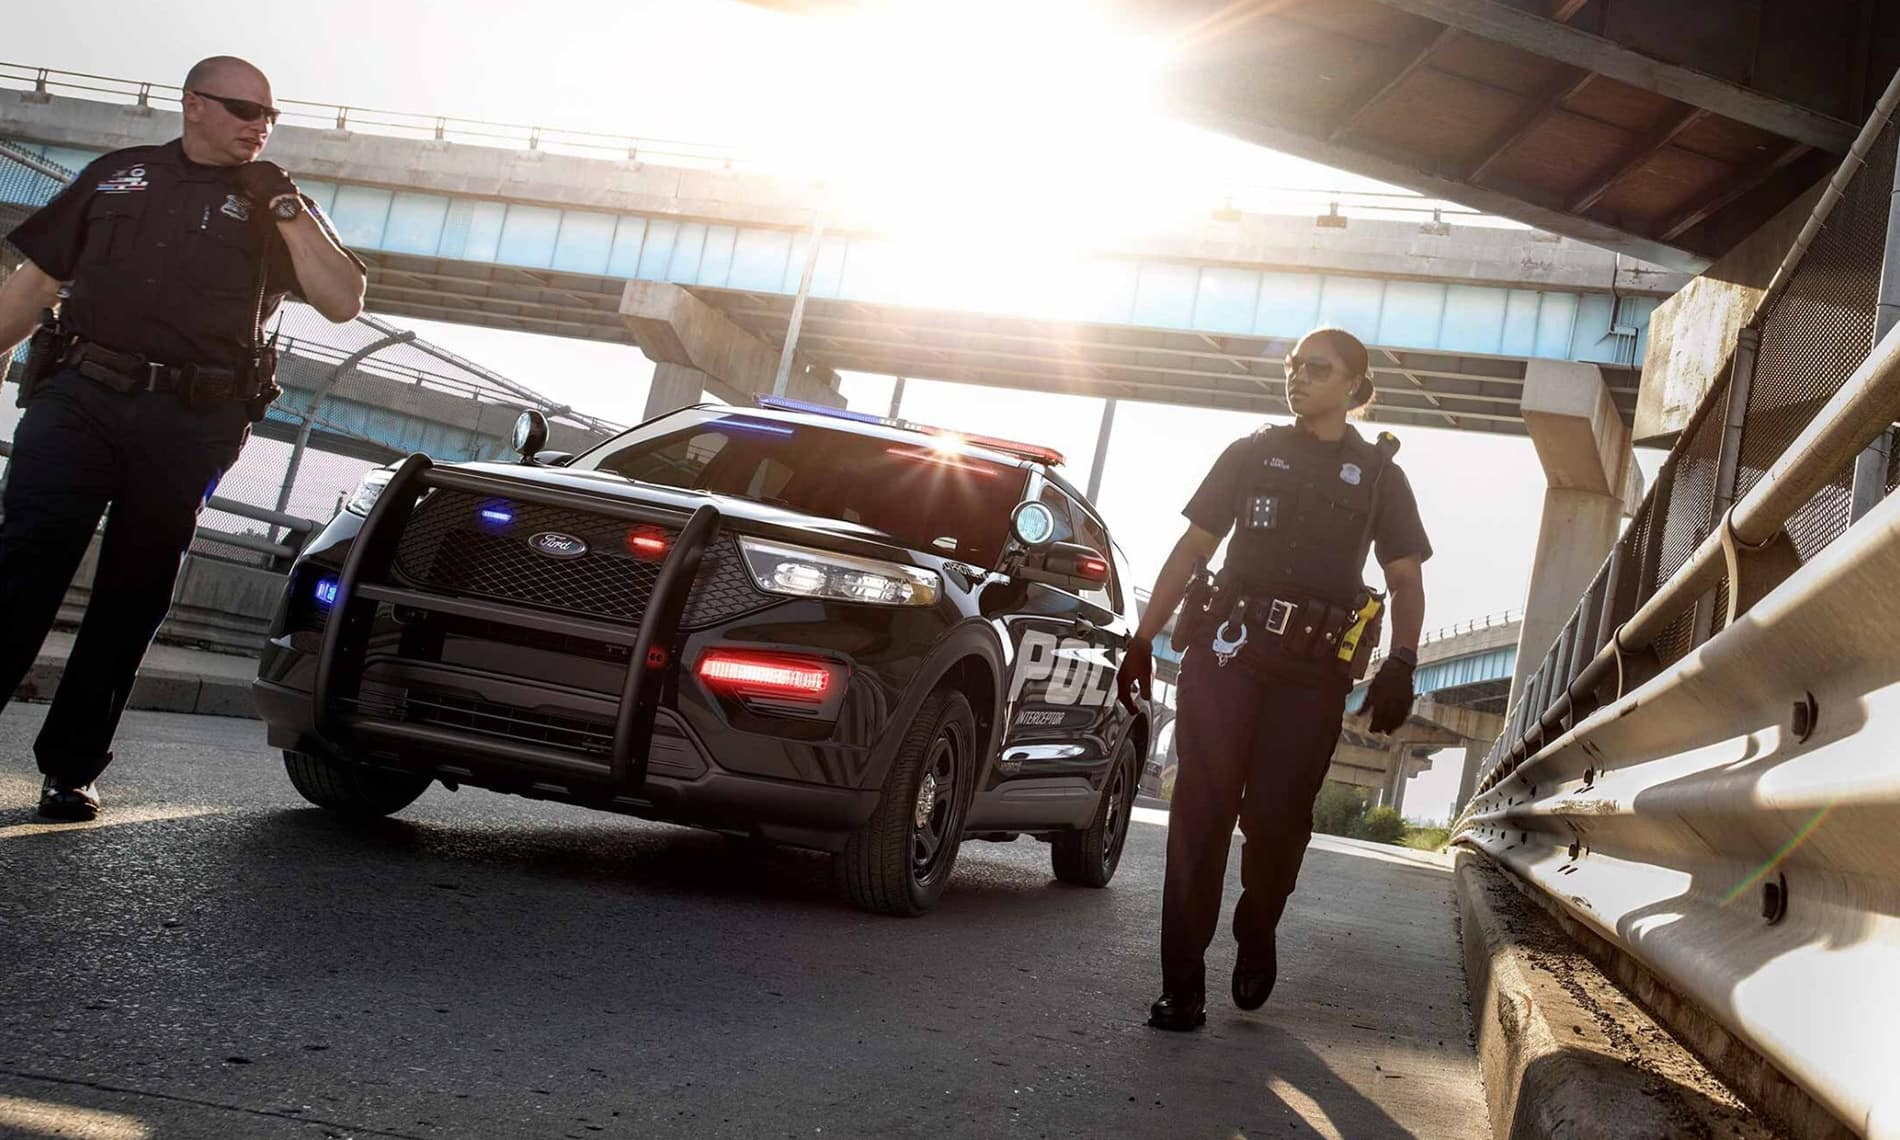 2021 Ford Police Interceptor Utility in St. Louis